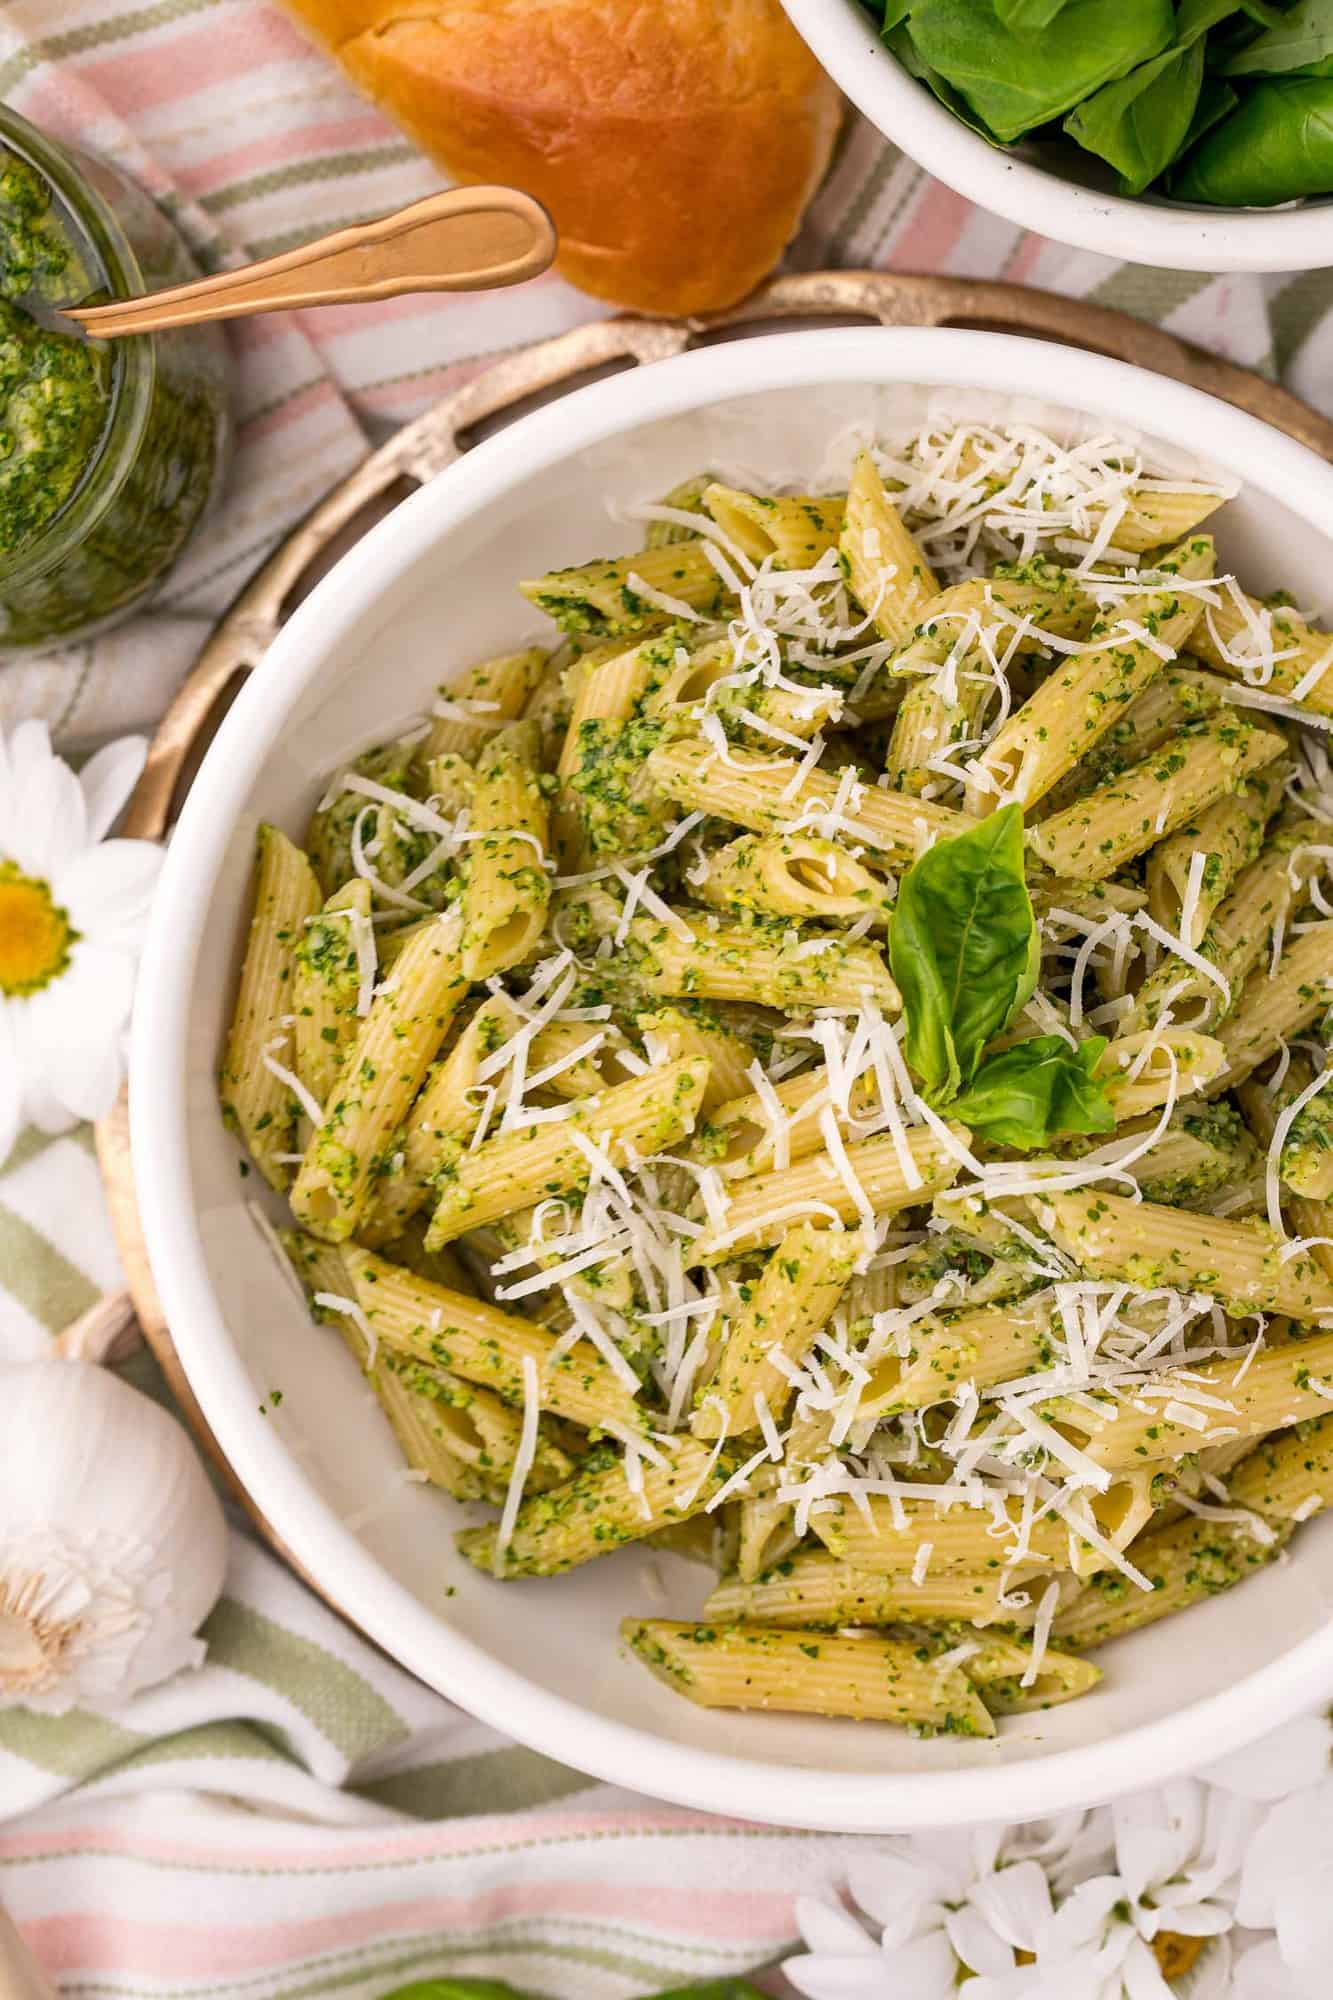 Overhead view of penne pasta in a white bowl, coated with pesto.